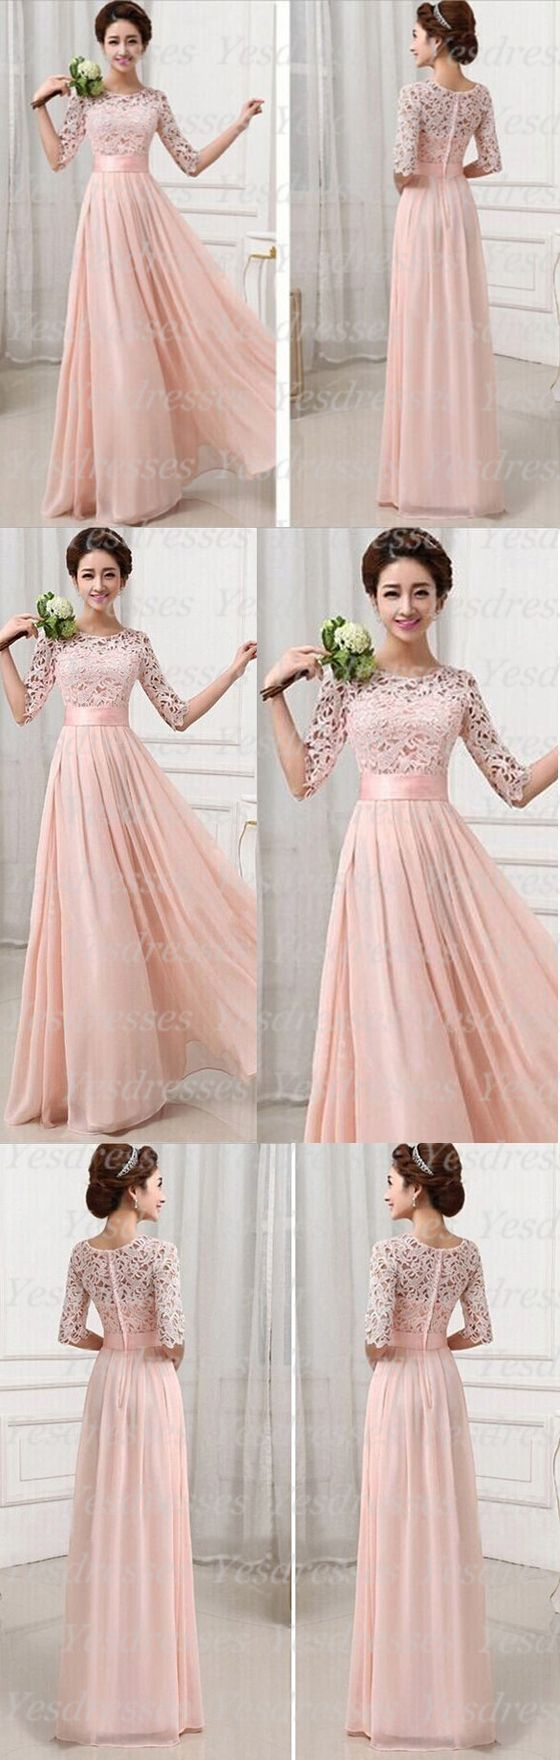 Wow, beautiful dress! #promdress #bridesmaiddress #partydress #dress #lacedress #longbridesmaiddresses #longdress #blushpink